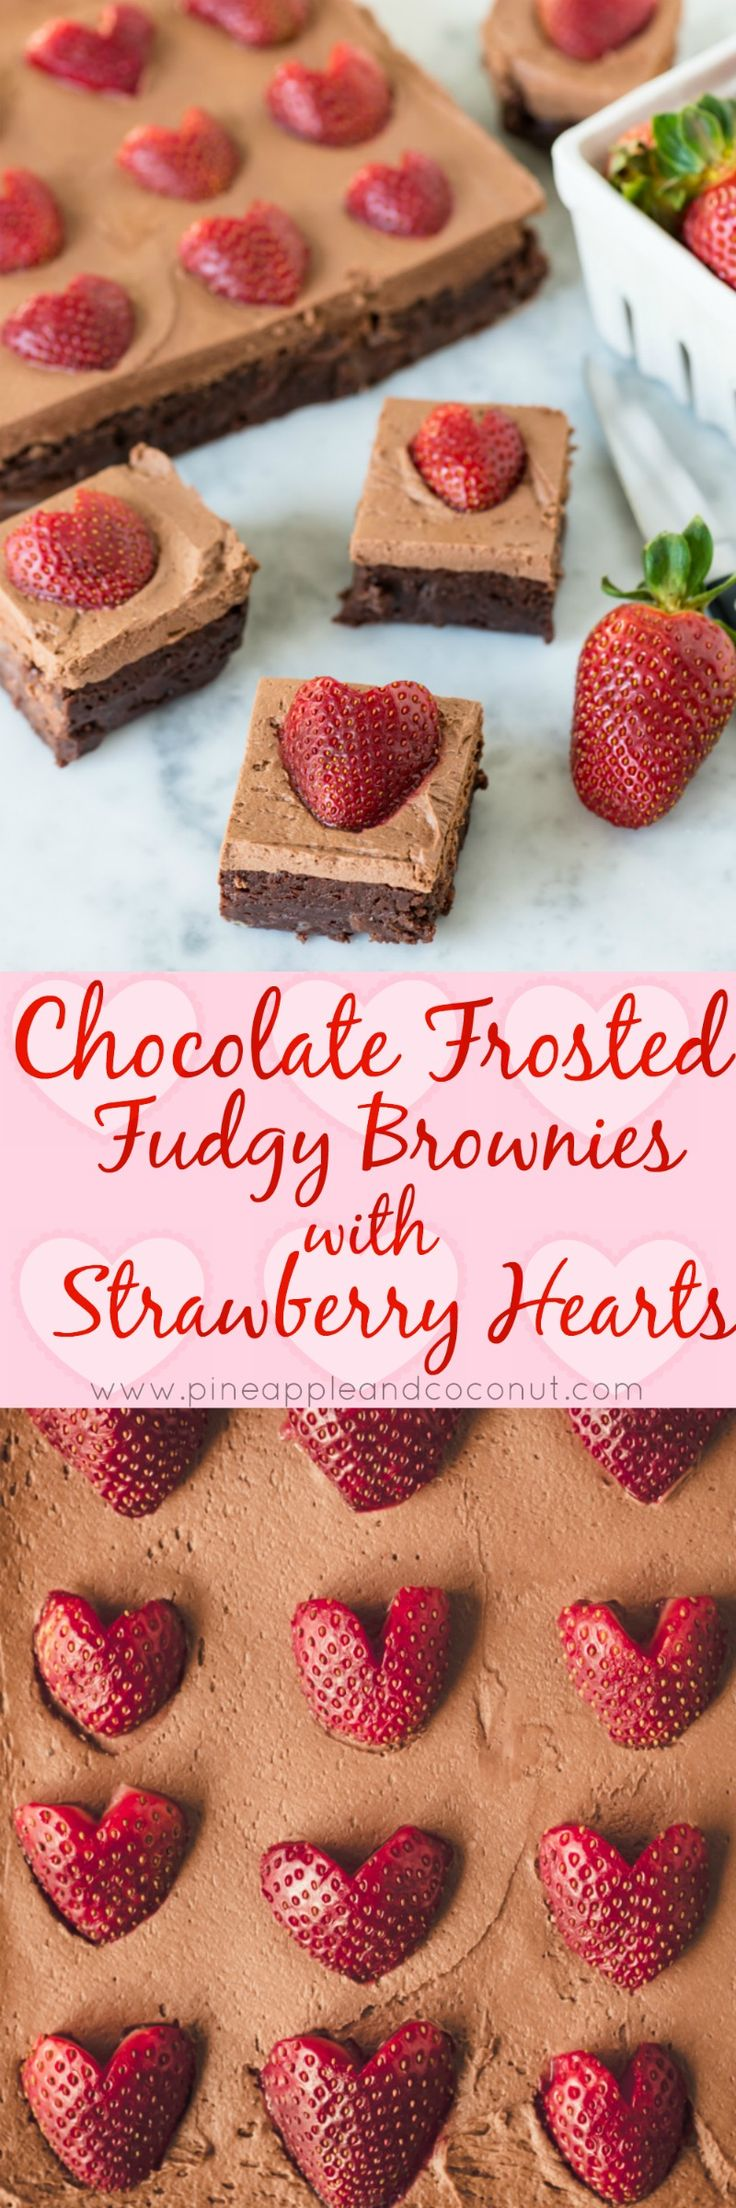 Chocolate Frosted Fudgy Brownies with Strawberries for Galentine's Day. Fudgy brownies with chocolate cream cheese frosting and heart shaped strawberries www.pineappleandcoconut.com